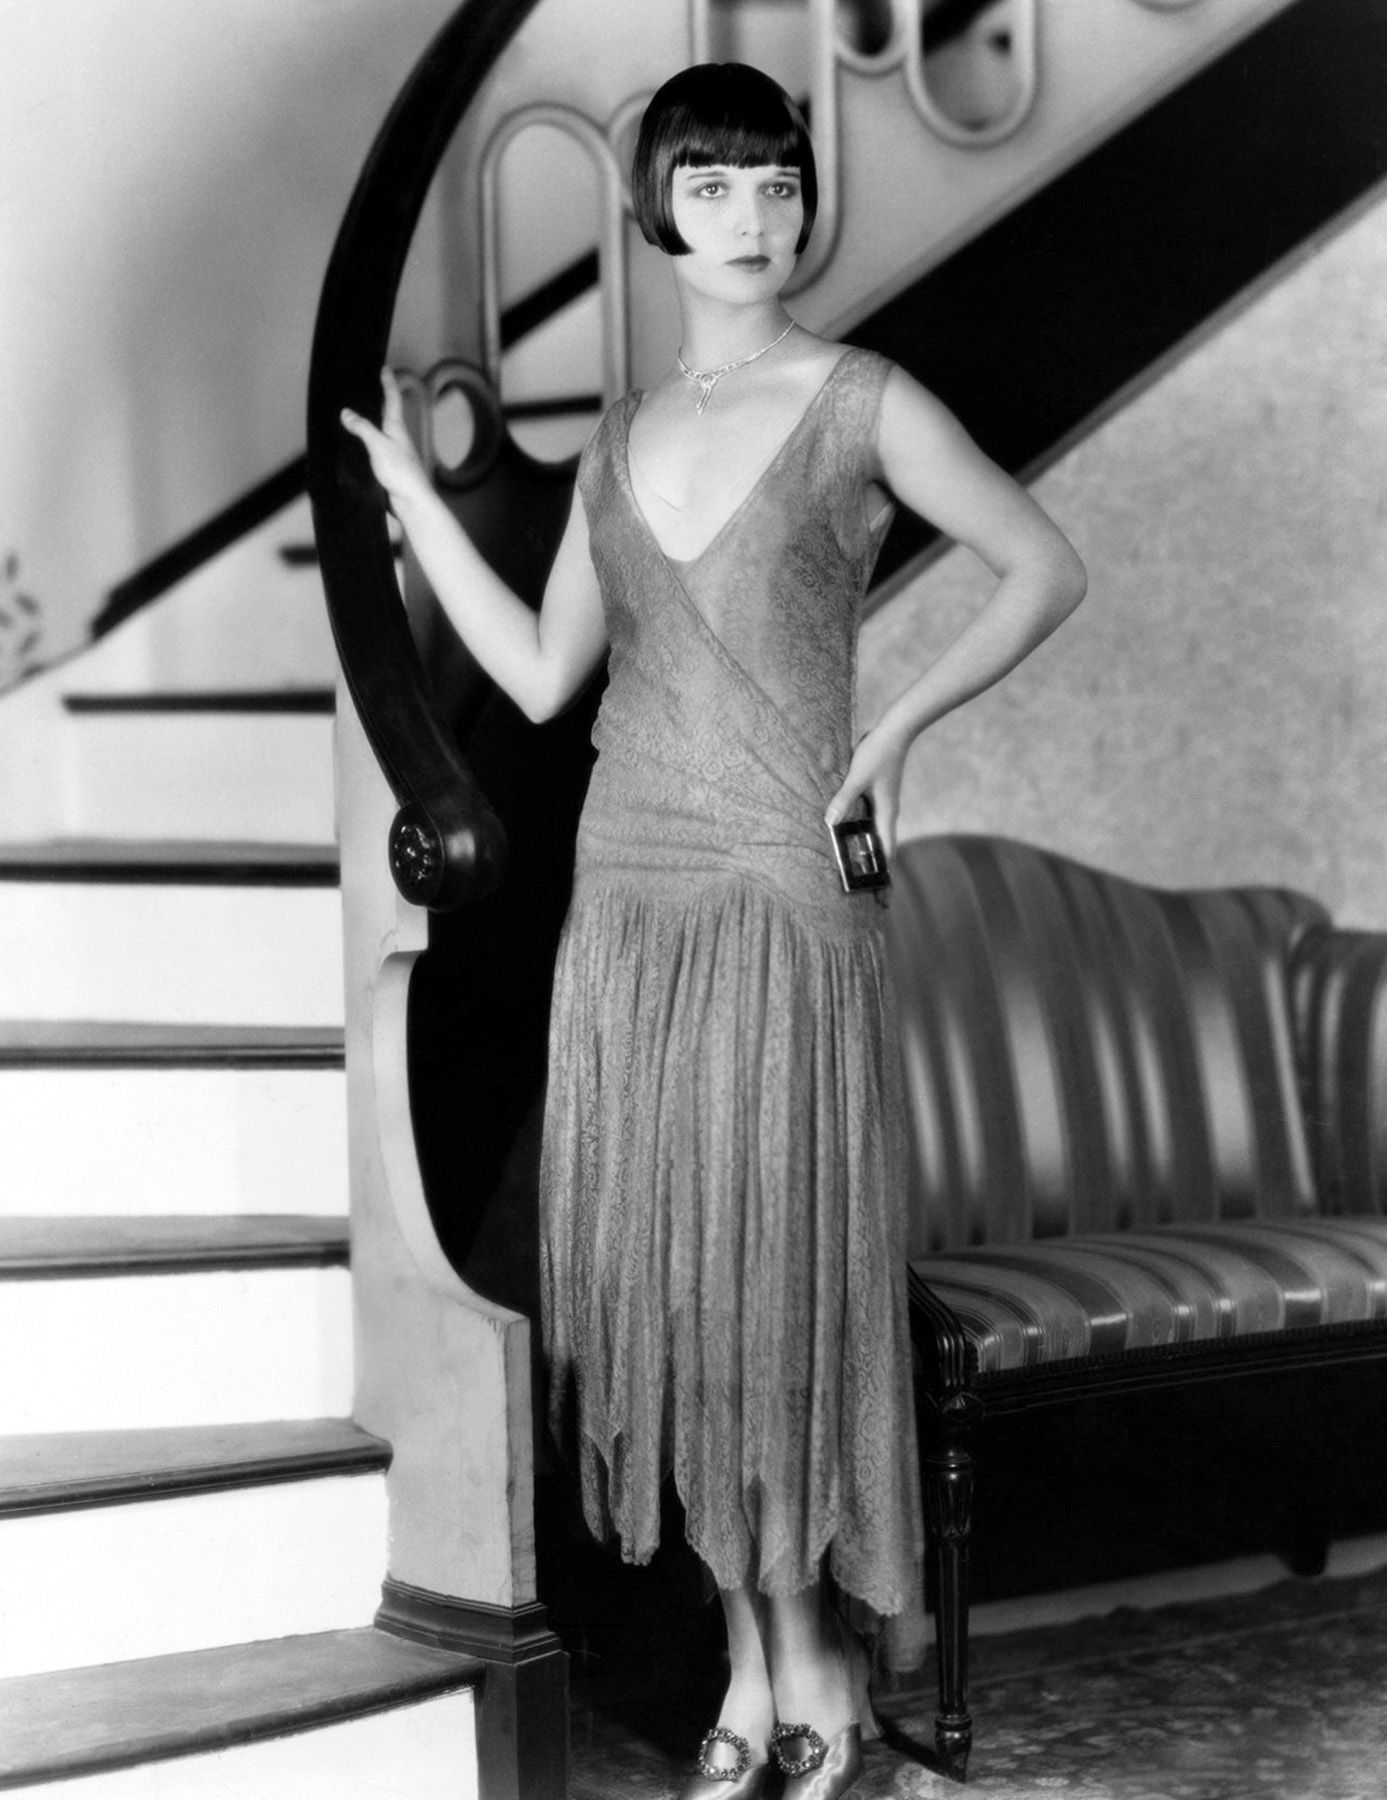 d981e33966c6 louise brooks 1928 - Buscar con Google